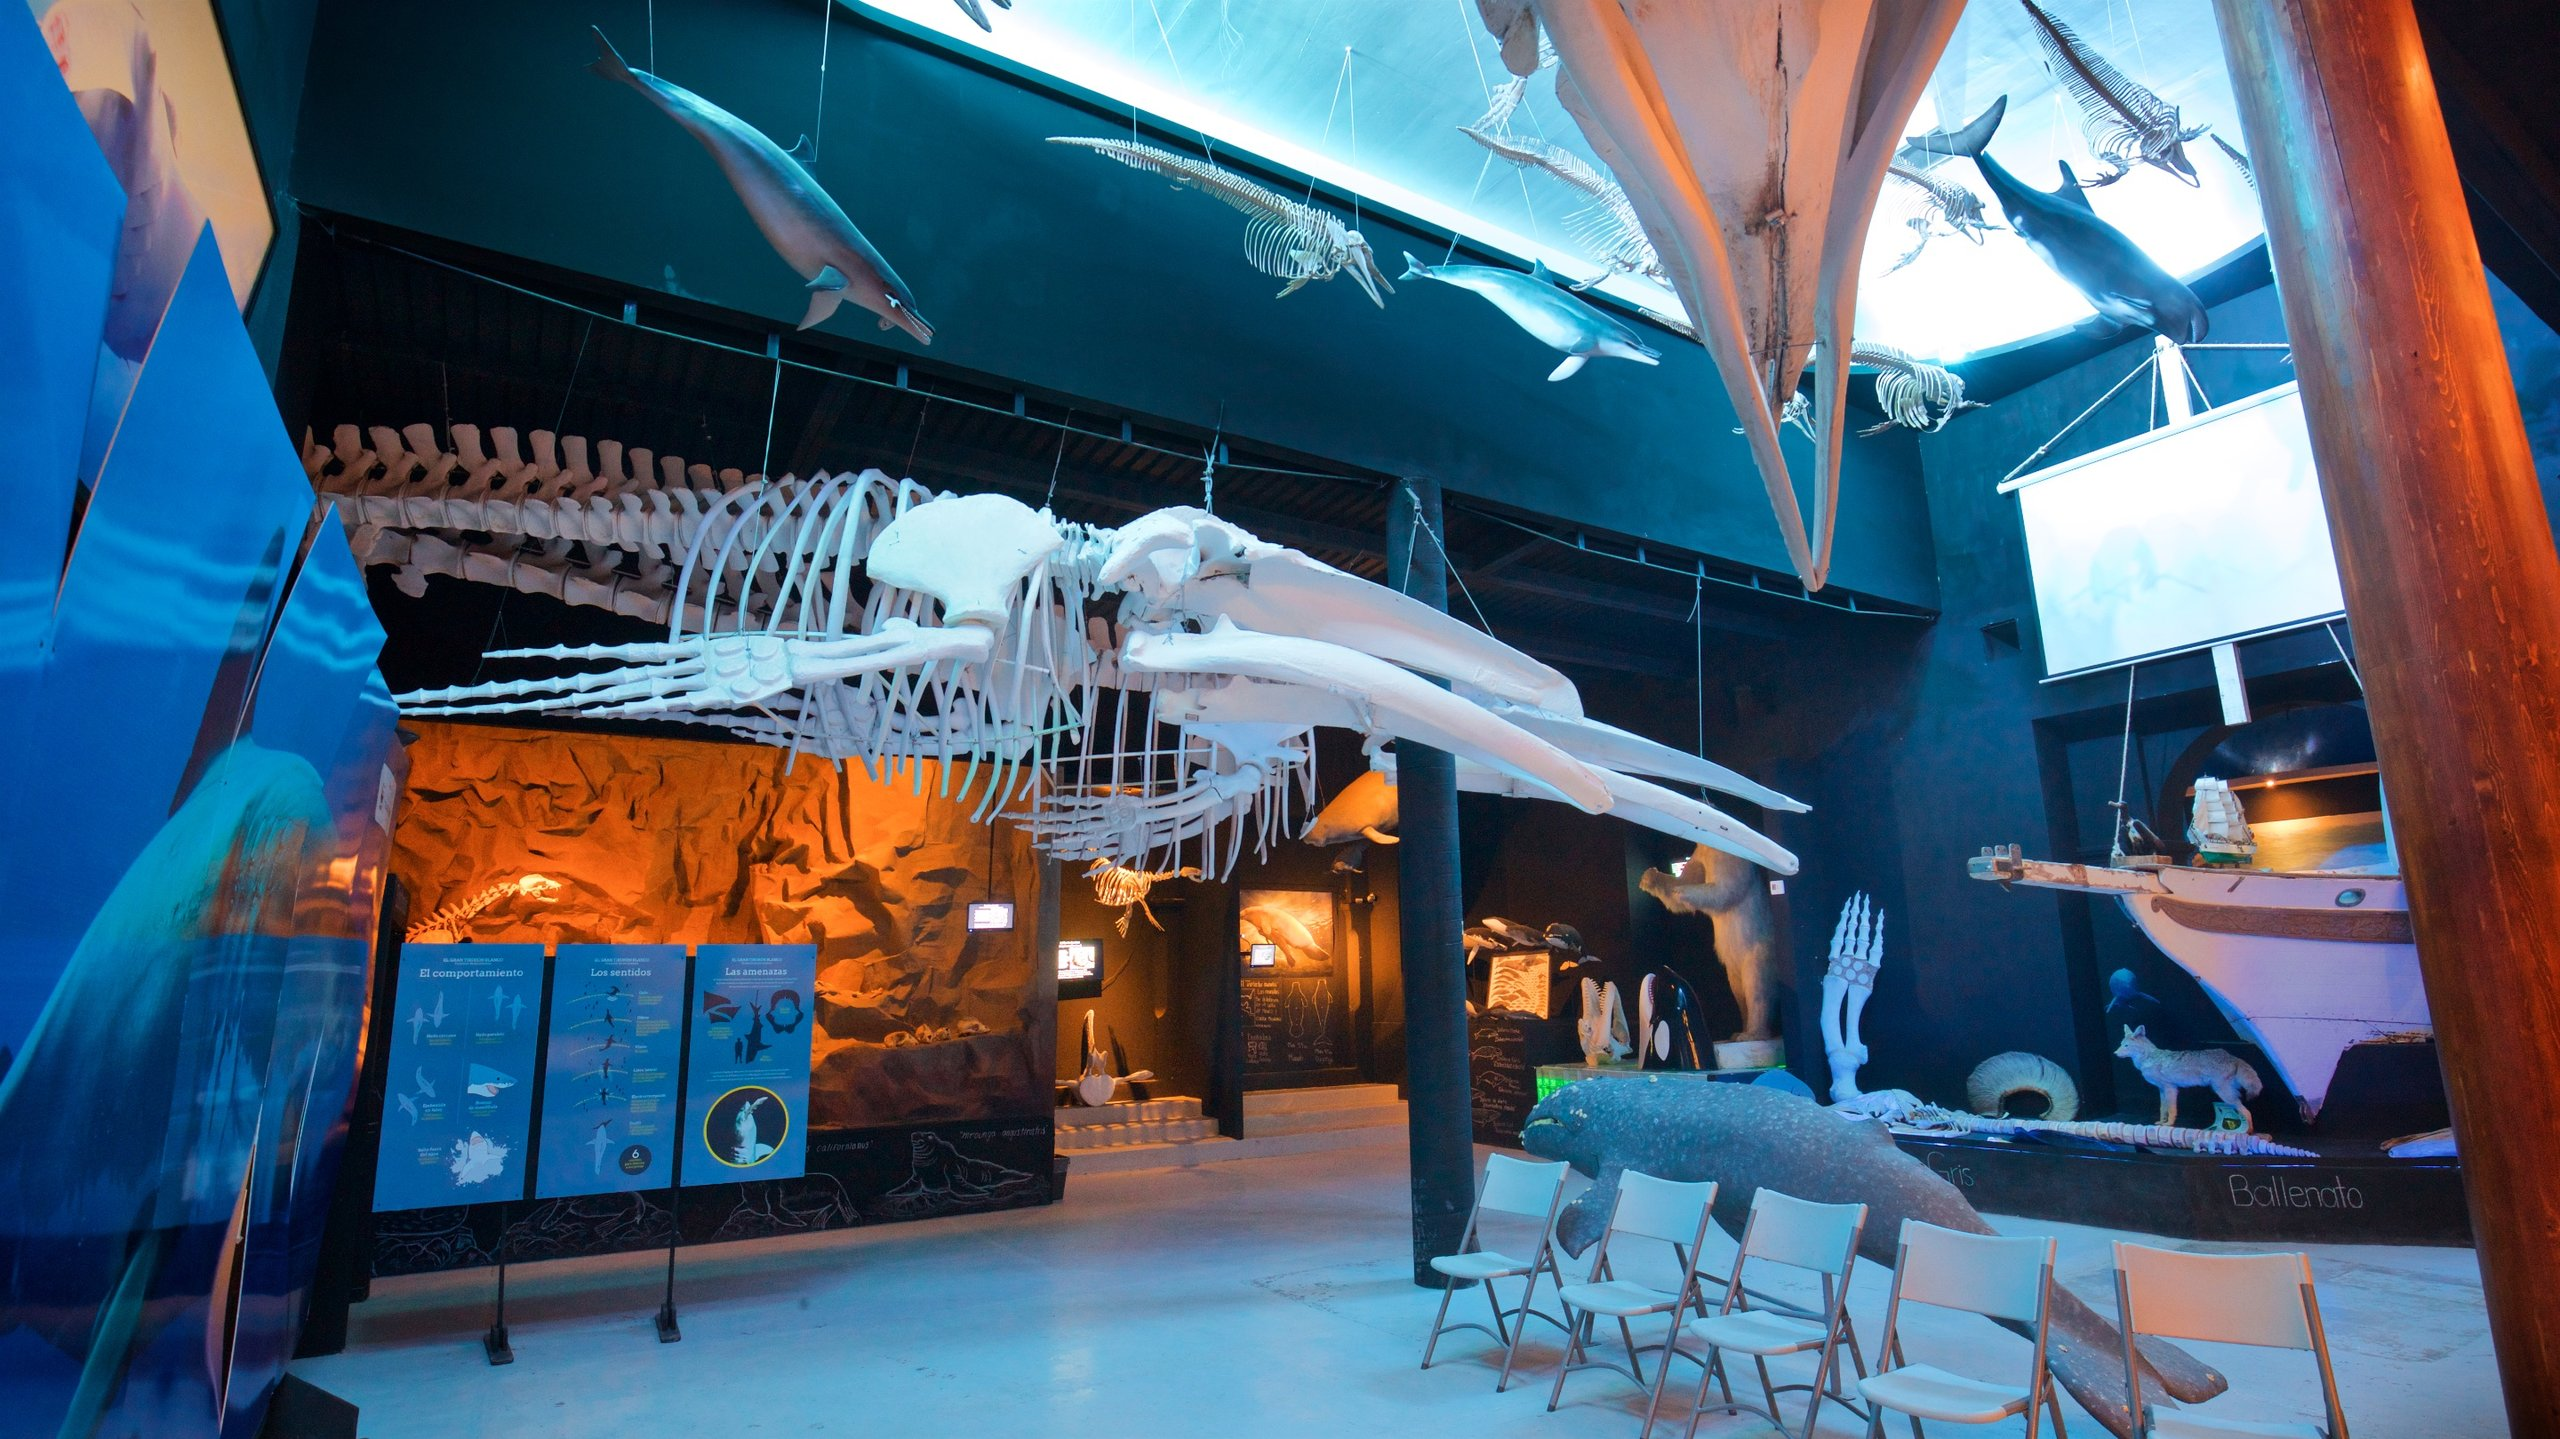 Videos, photos and large collection of whale and turtle skeletons provide a fascinating insight into the region's extraordinary aquatic life.